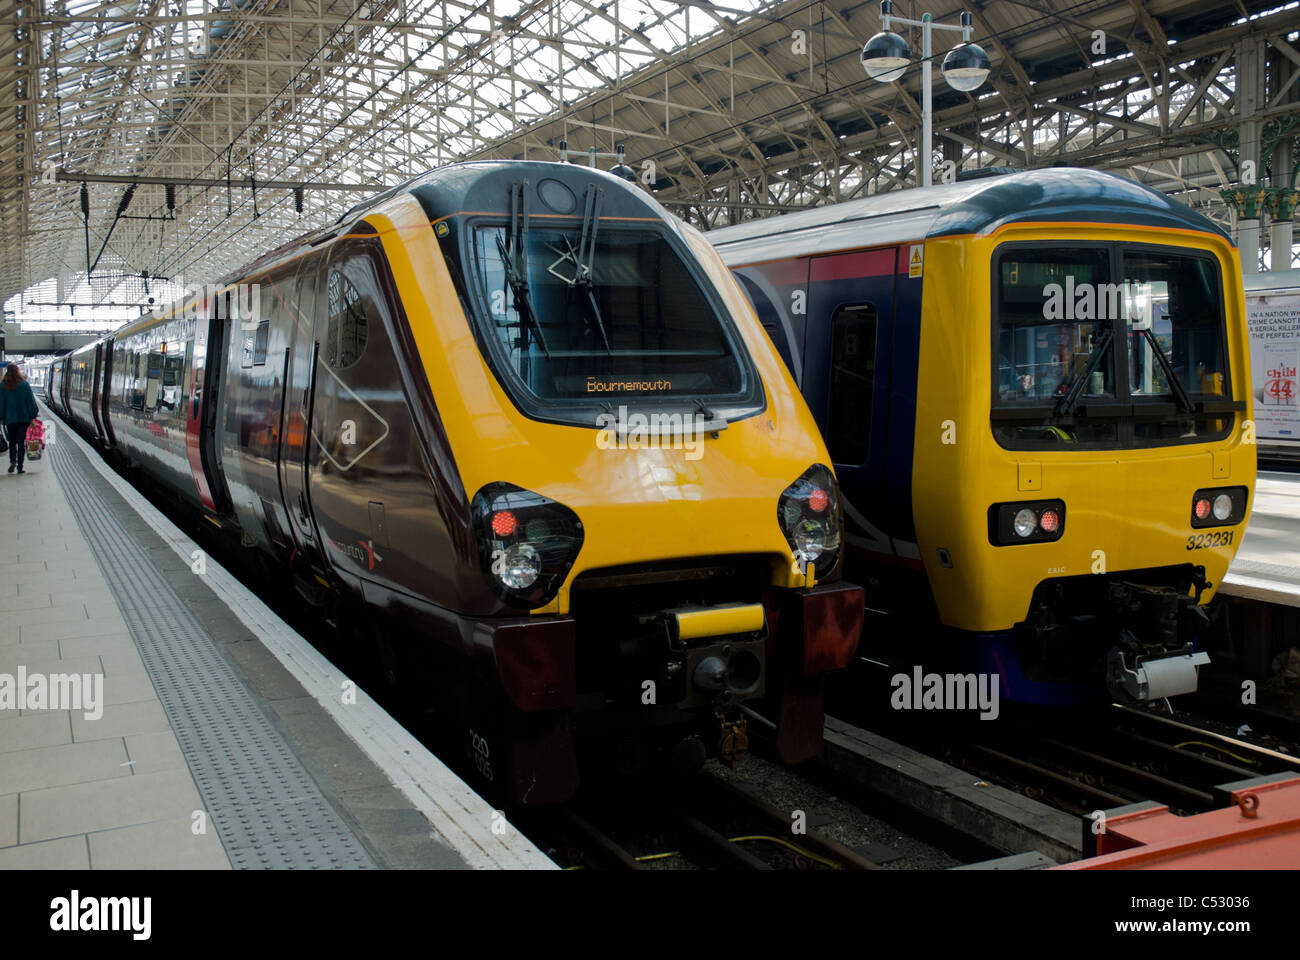 'Voyager' higher speed train preparing to depart from the station. - Stock Image